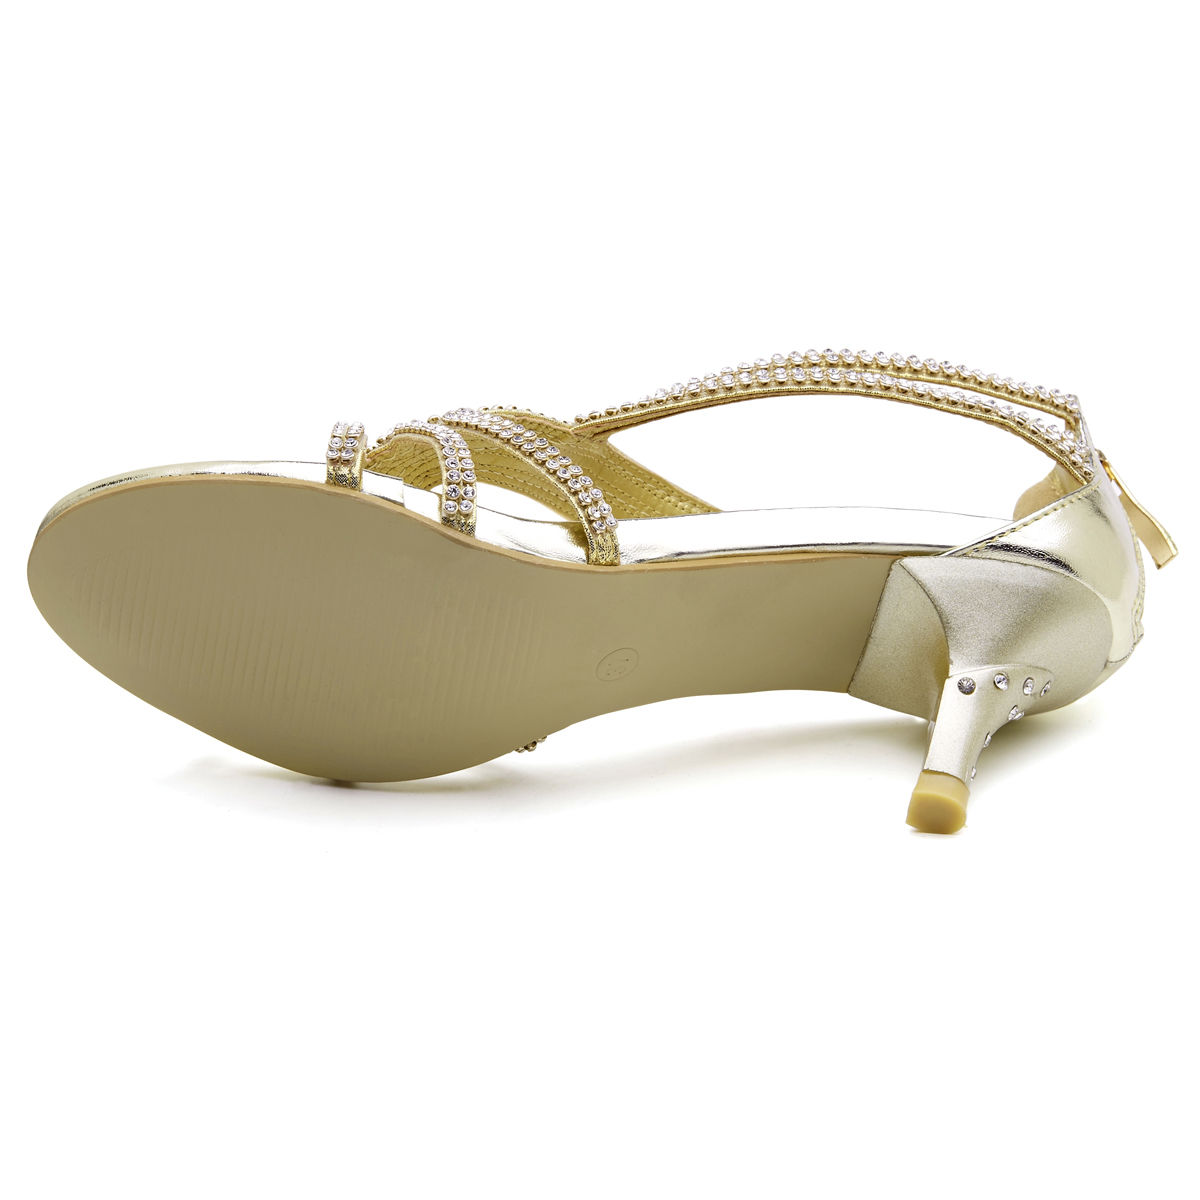 Womens-Ladies-Low-Kitten-Heel-Wedding-Glitter-Sandals-Strappy-Silver-Shoes thumbnail 22